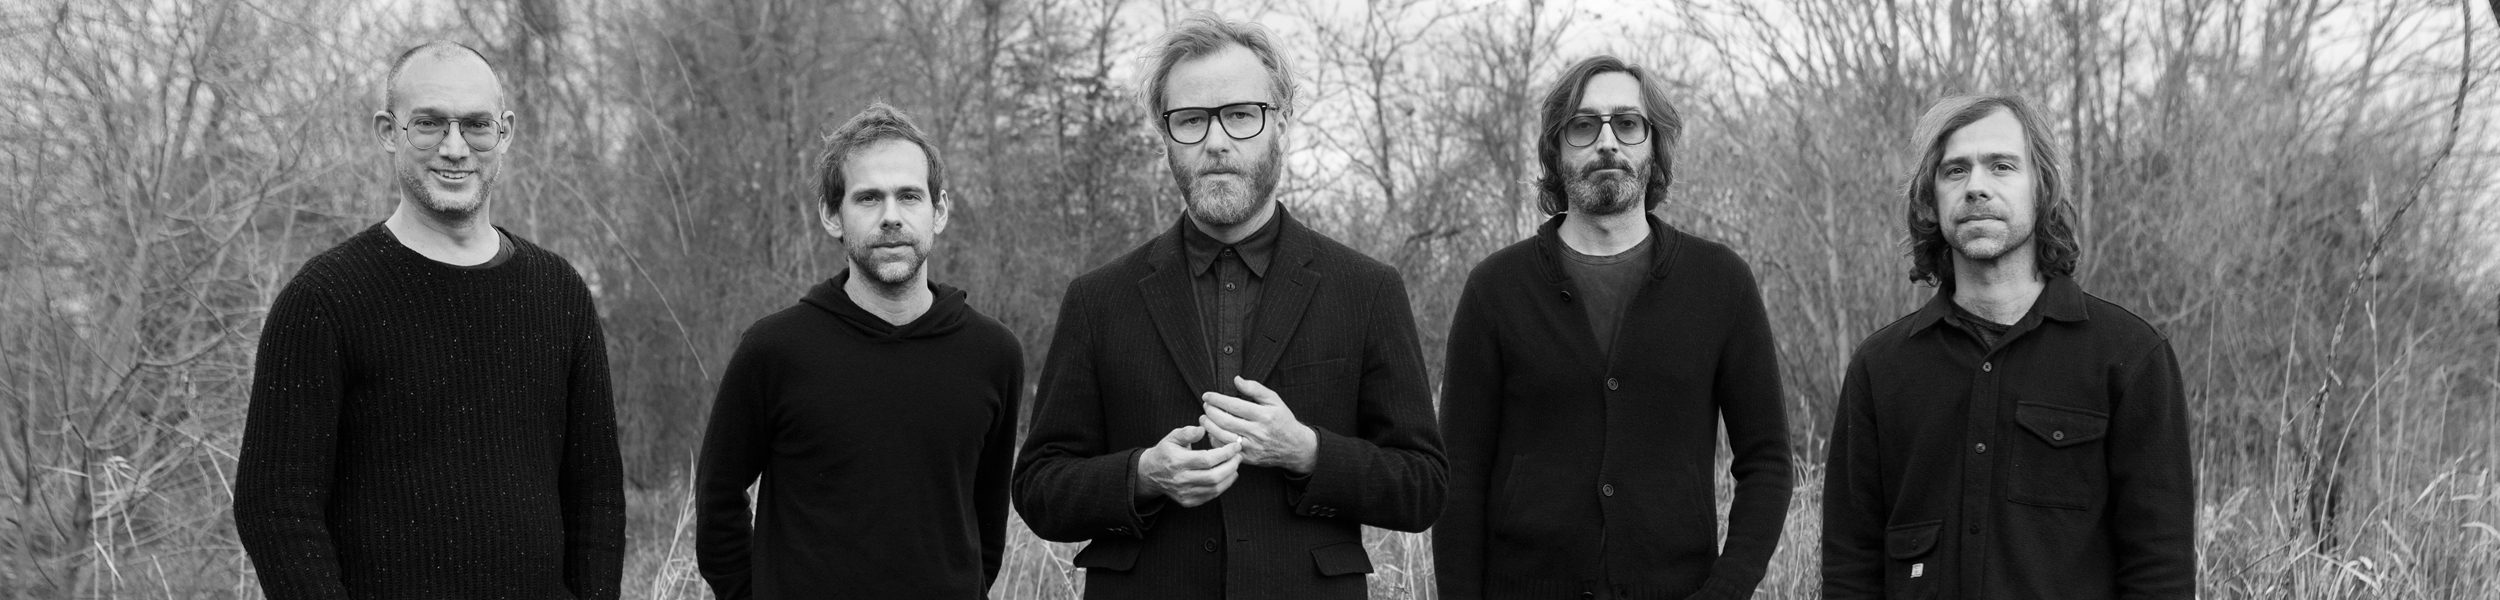 The National - Official 'I Need My Girl' Video, Covers Contest Winner Chosen